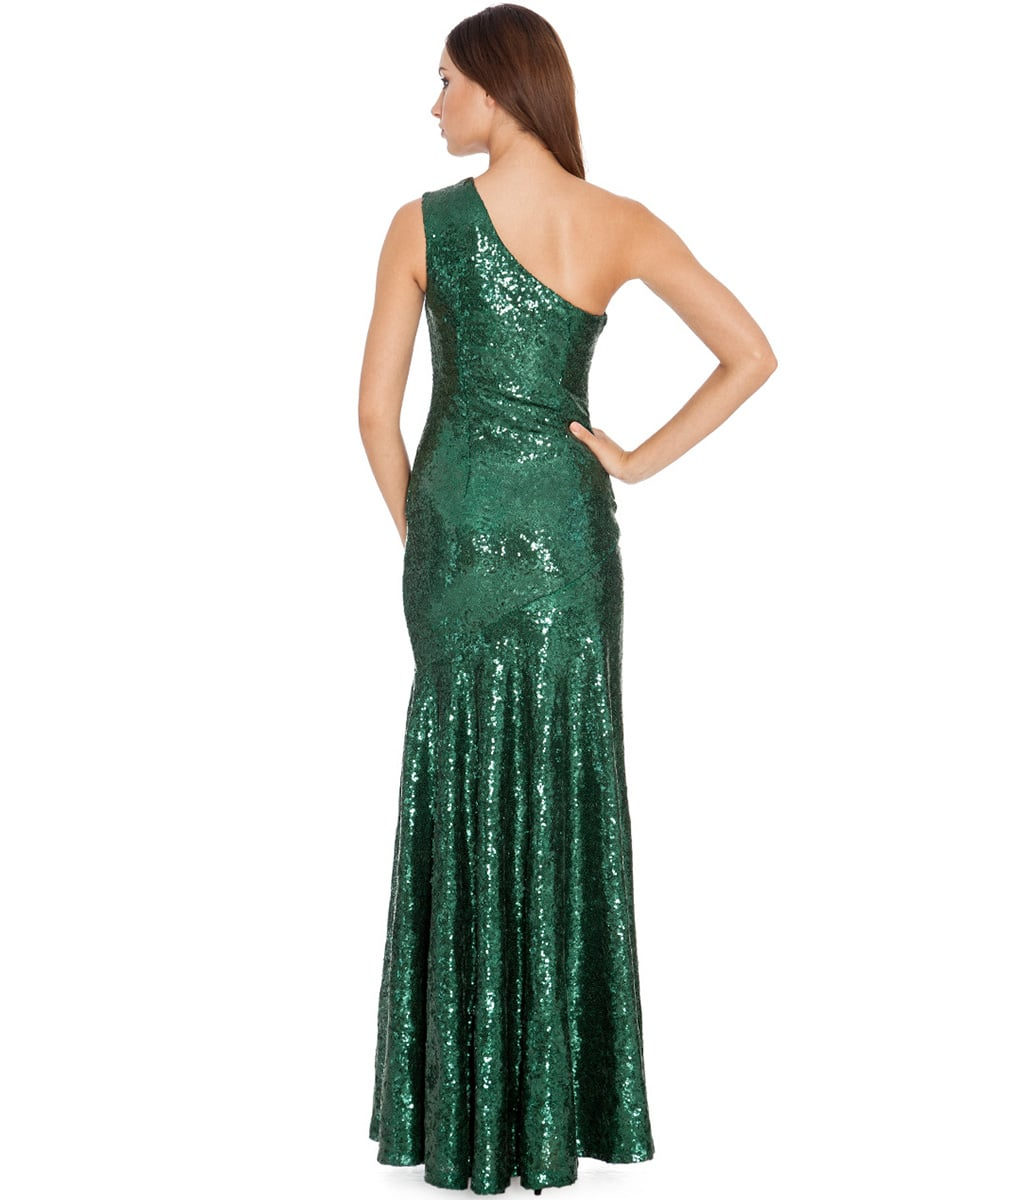 City Goddess - Emerald Green One-Shoulder Sequins Gown | Alila